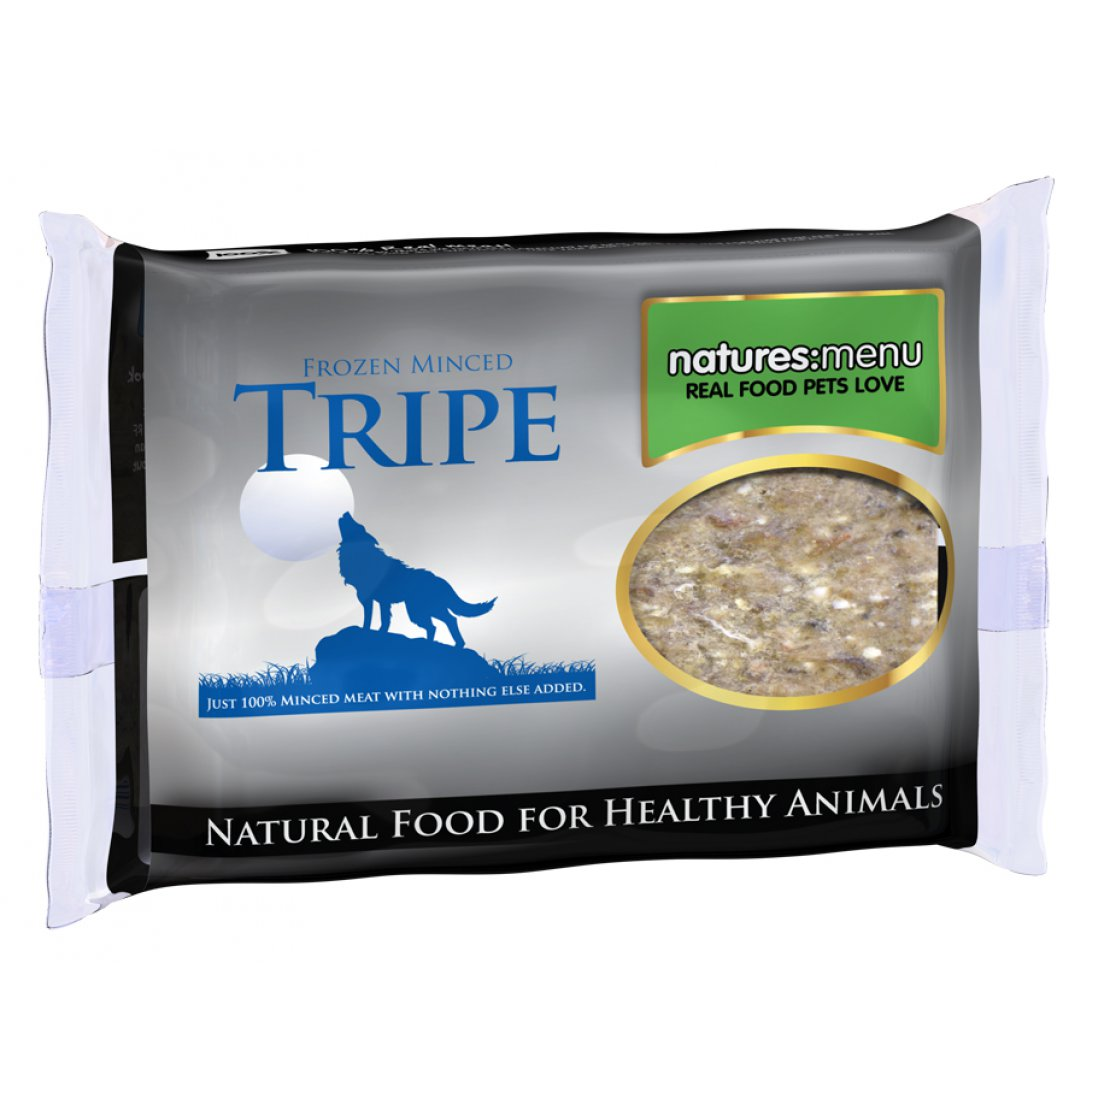 ONLY AVAILABLE FOR LOCAL DELIVERY. Natures Menu Frozen Dog Food. Tripe Mince